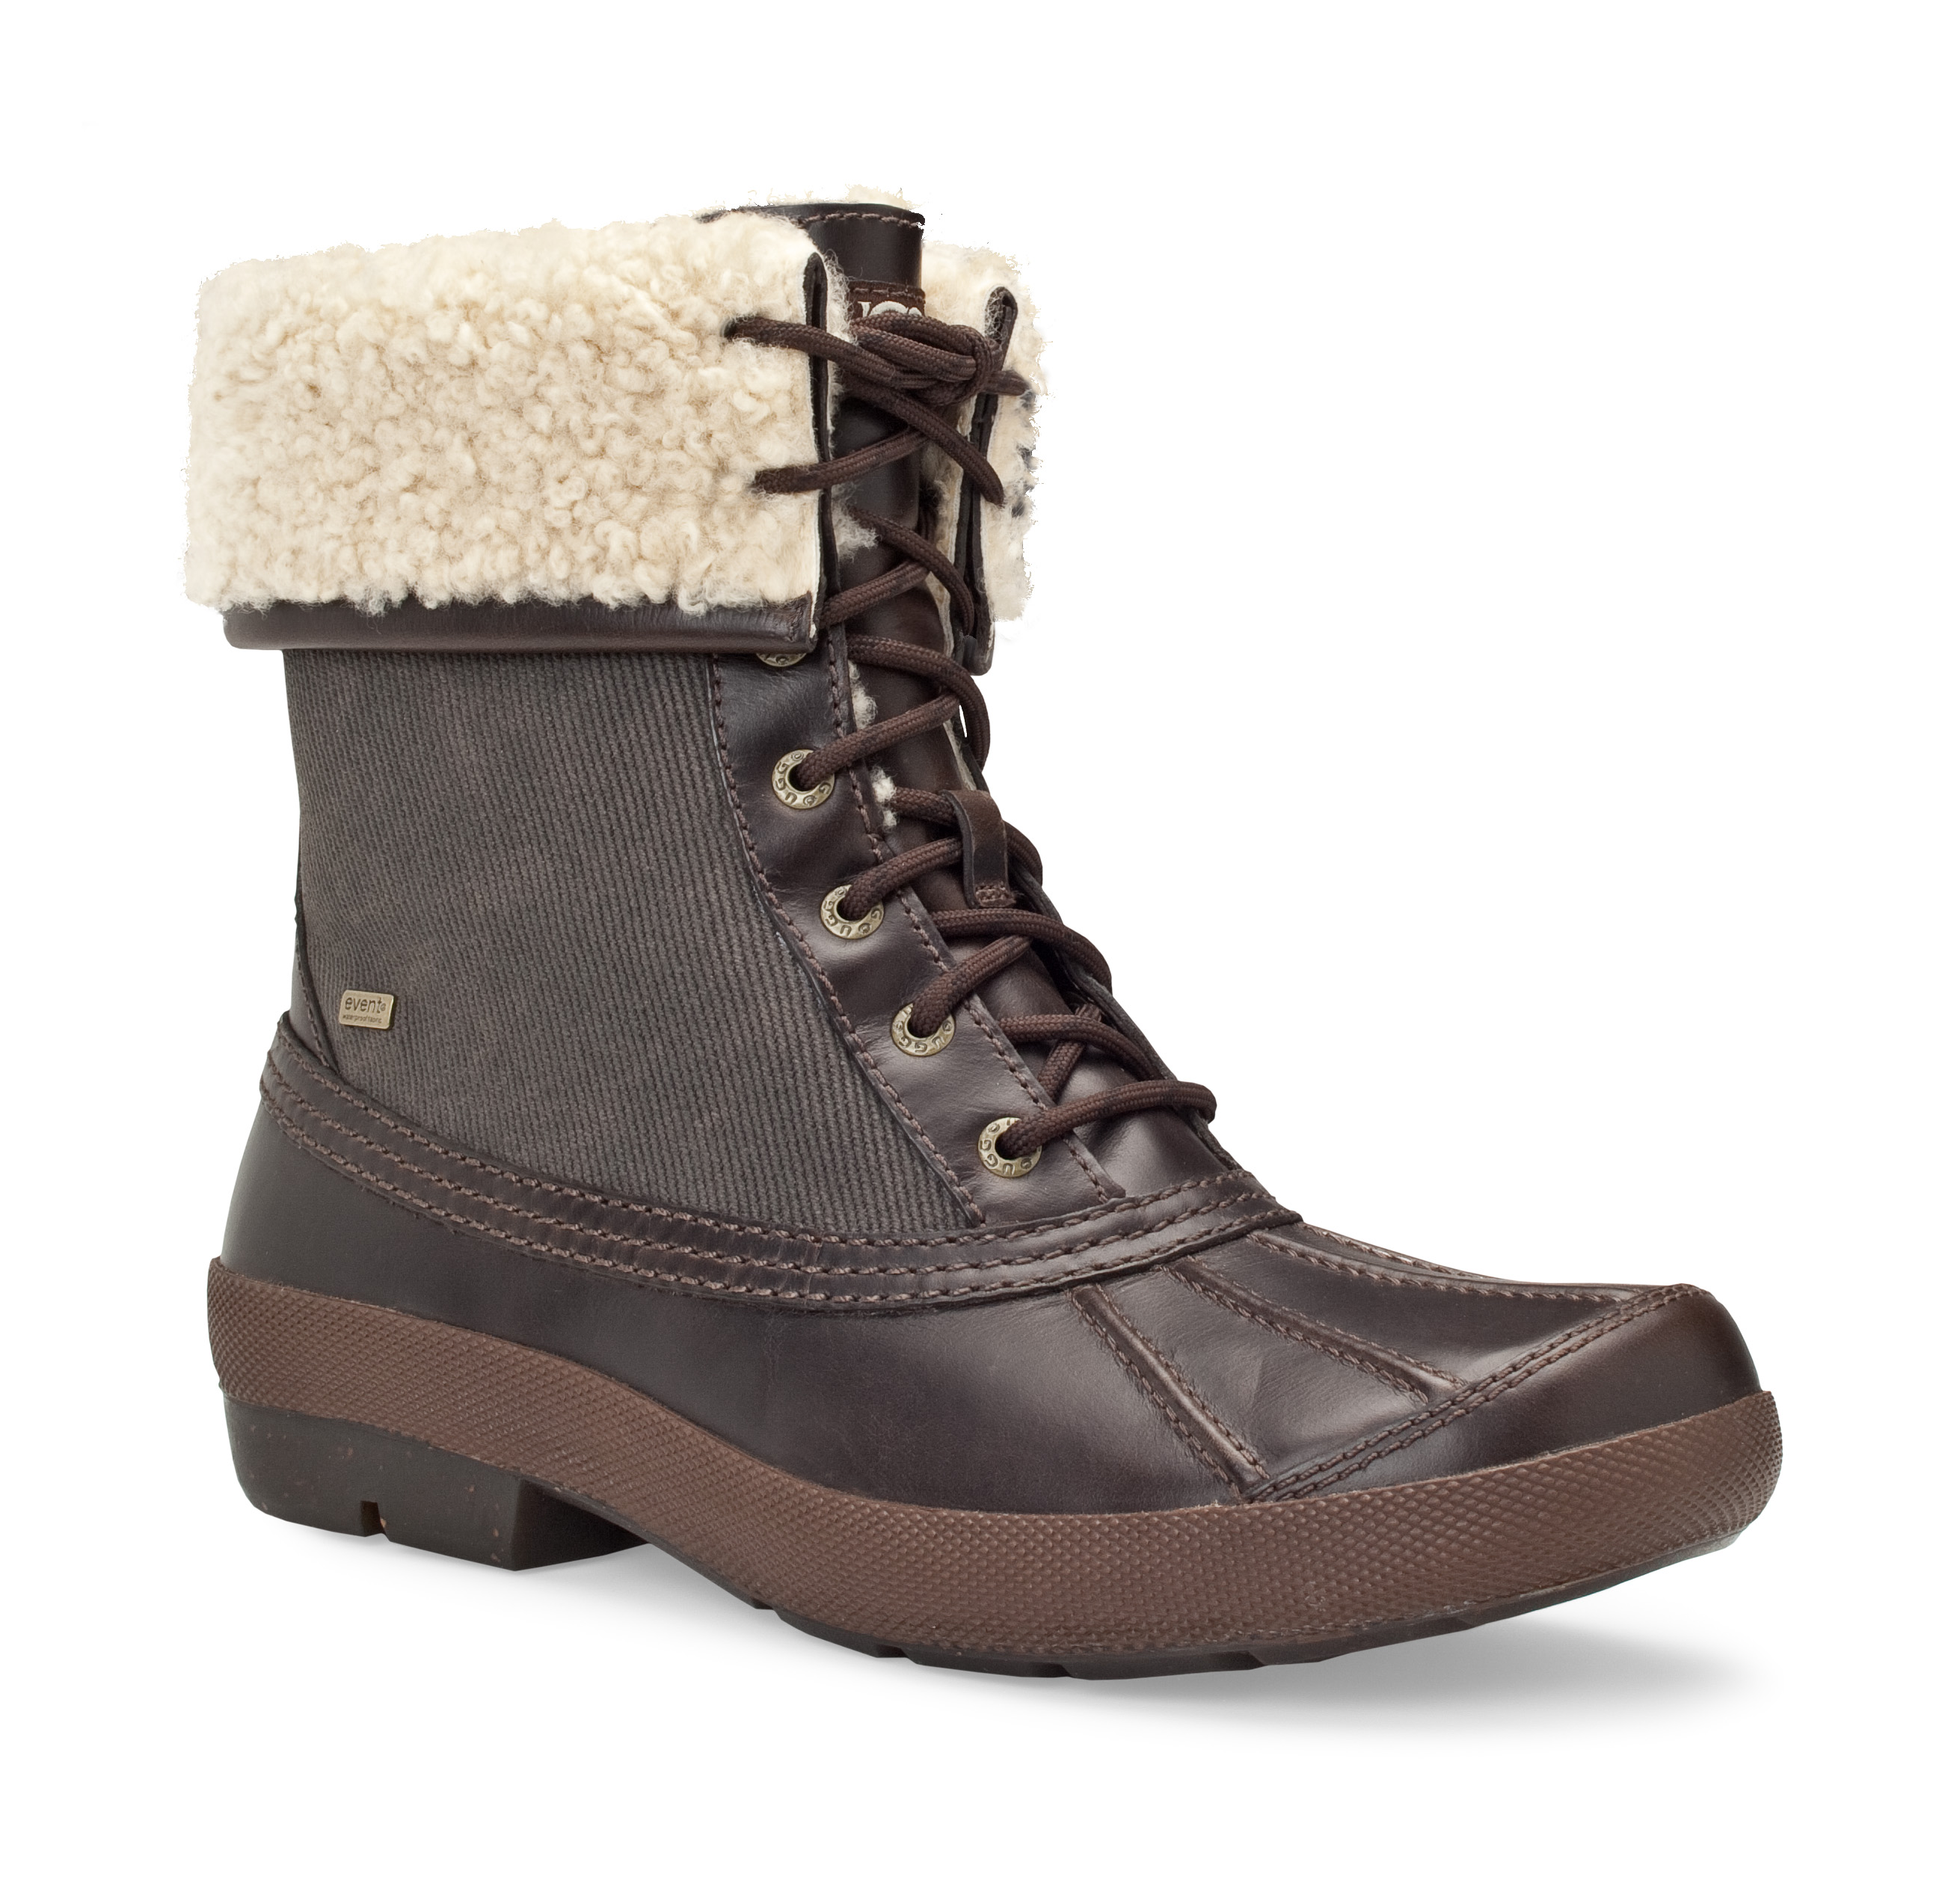 3249 coalson stt1 UGG Mens Campaign with Tom Brady.